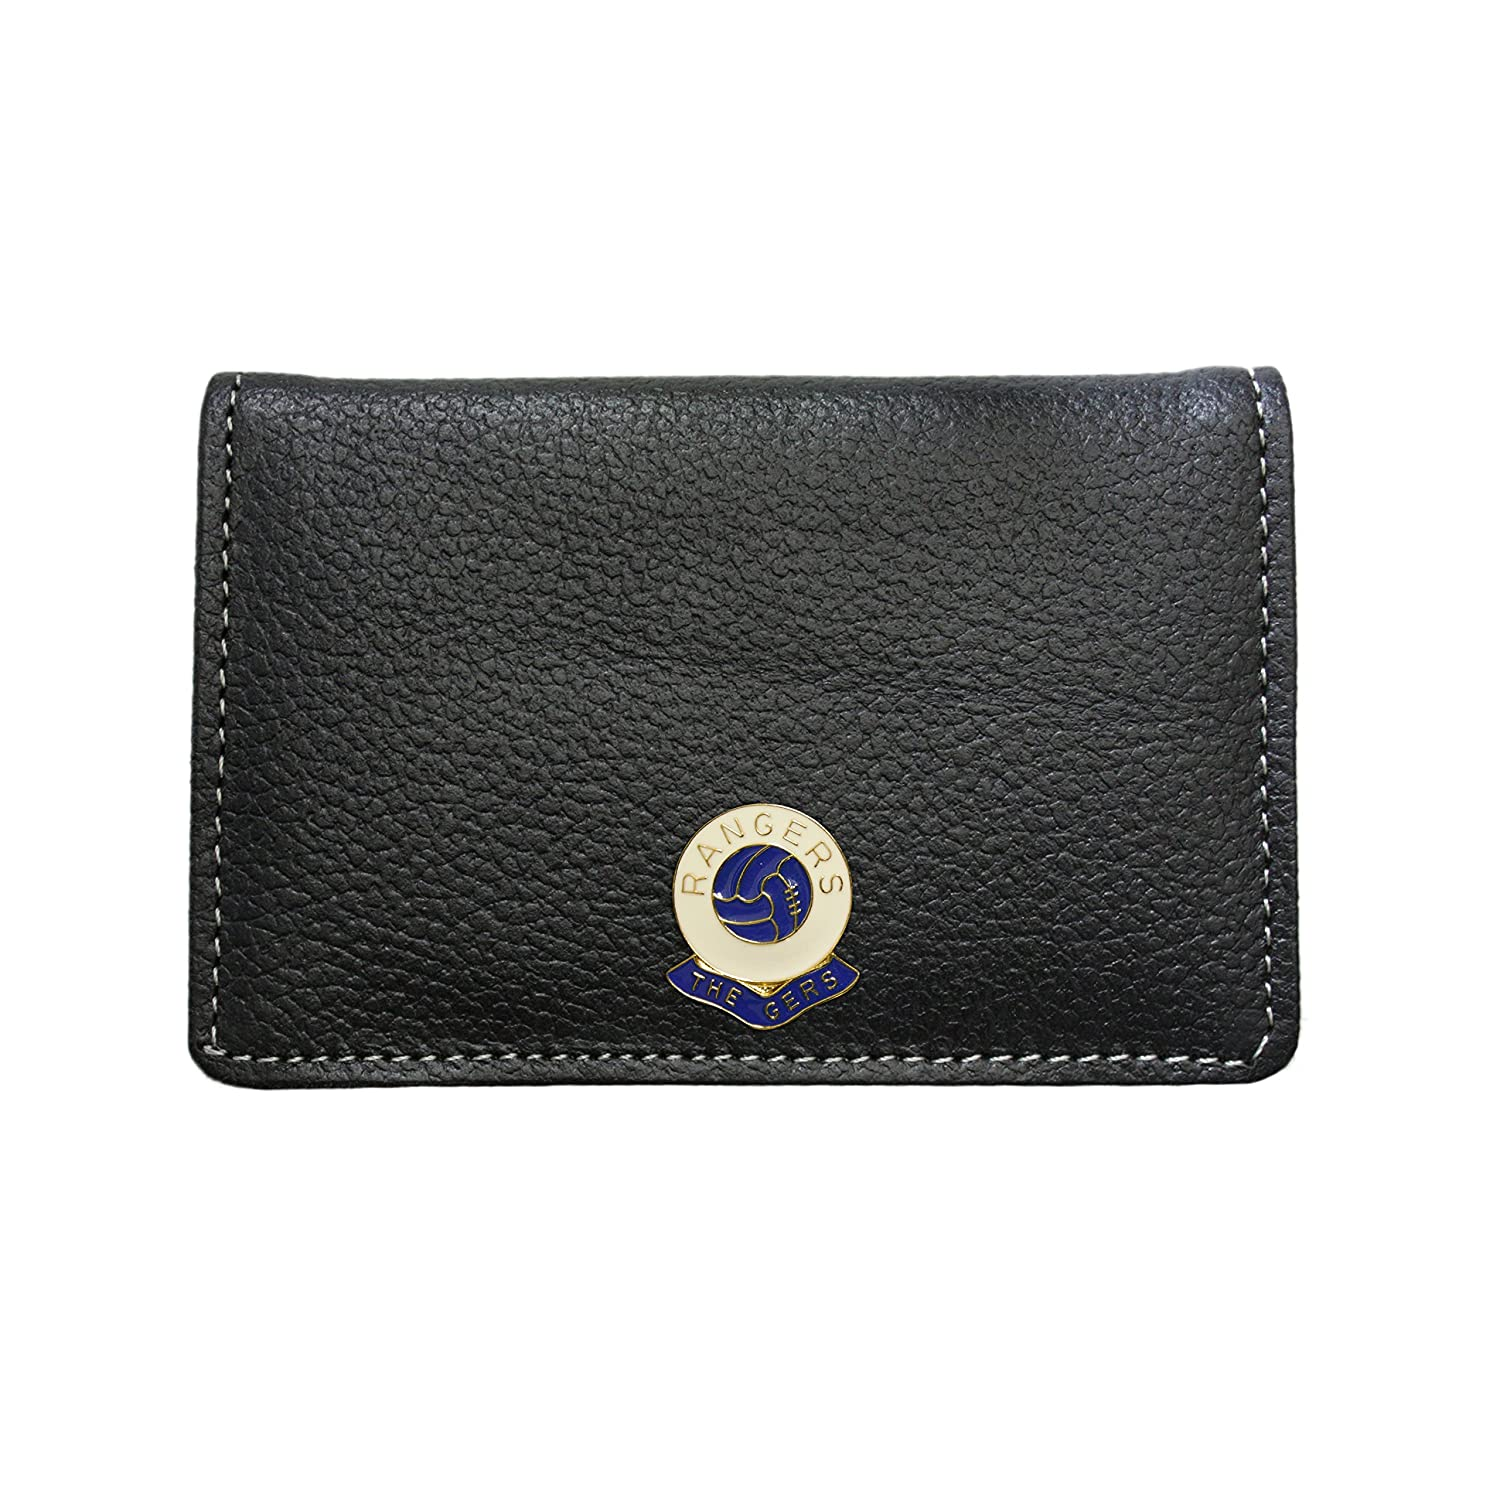 Glasgow Rangers football club leather card holder wallet